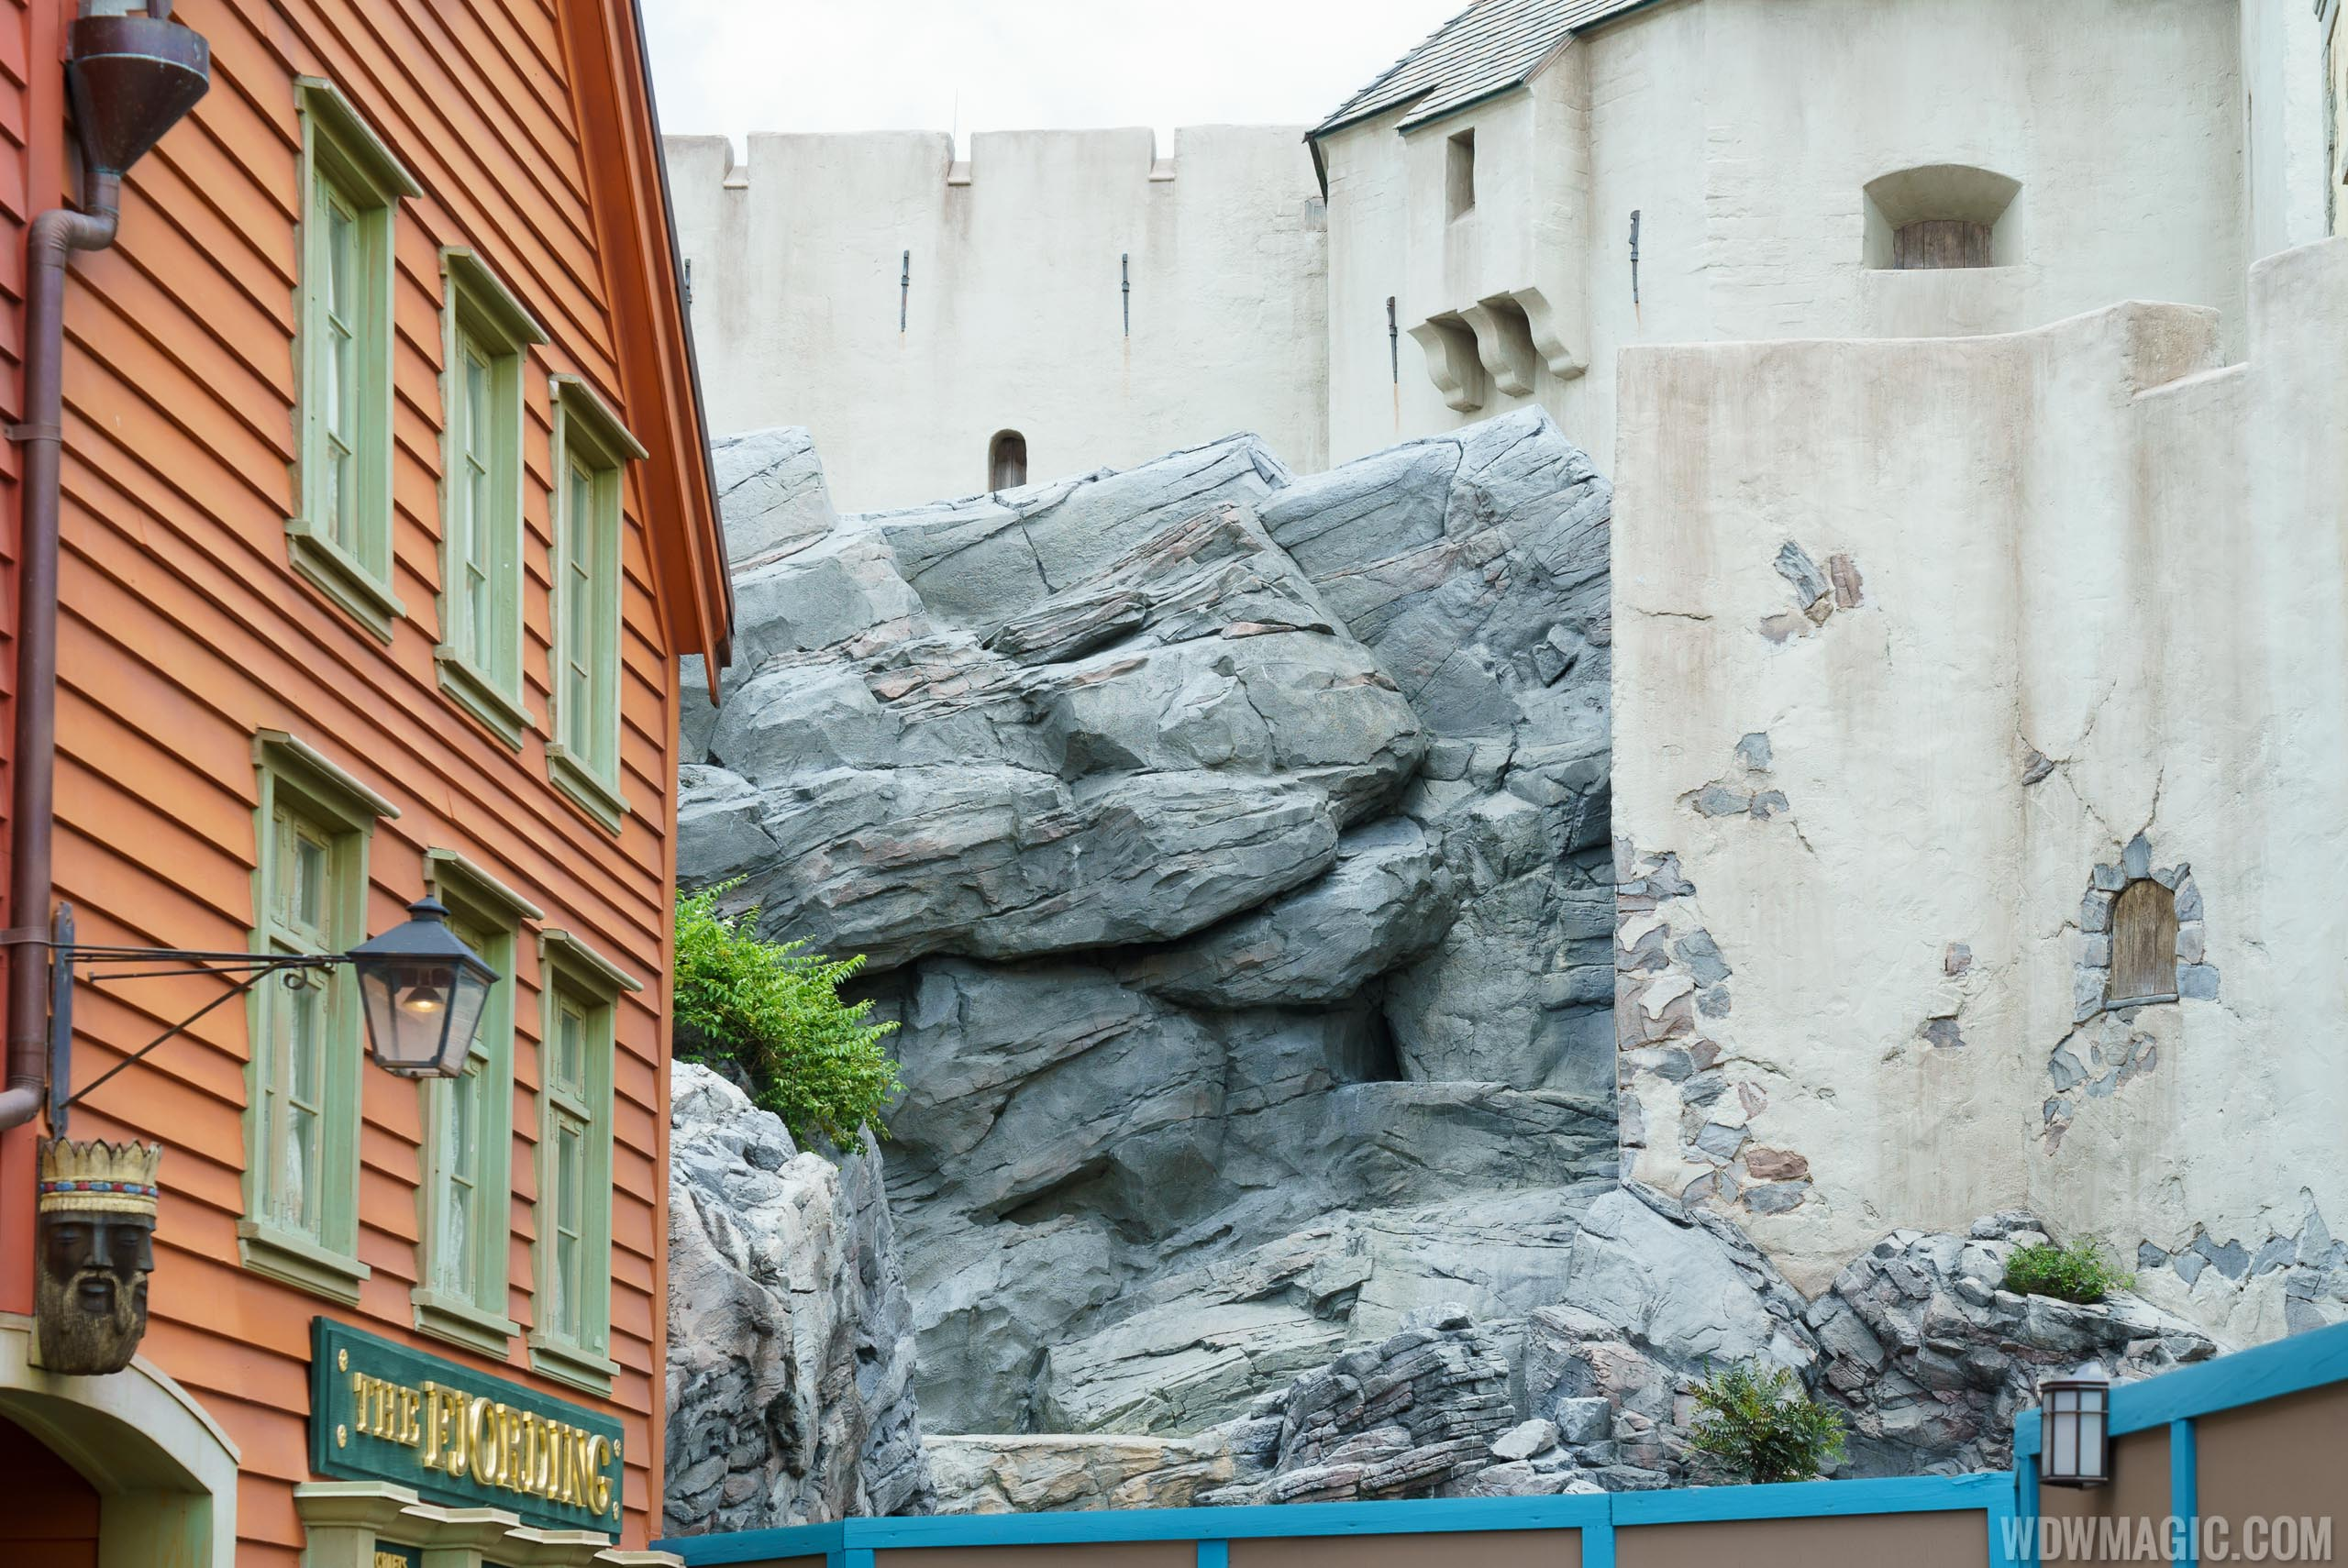 Frozen Ever After construction